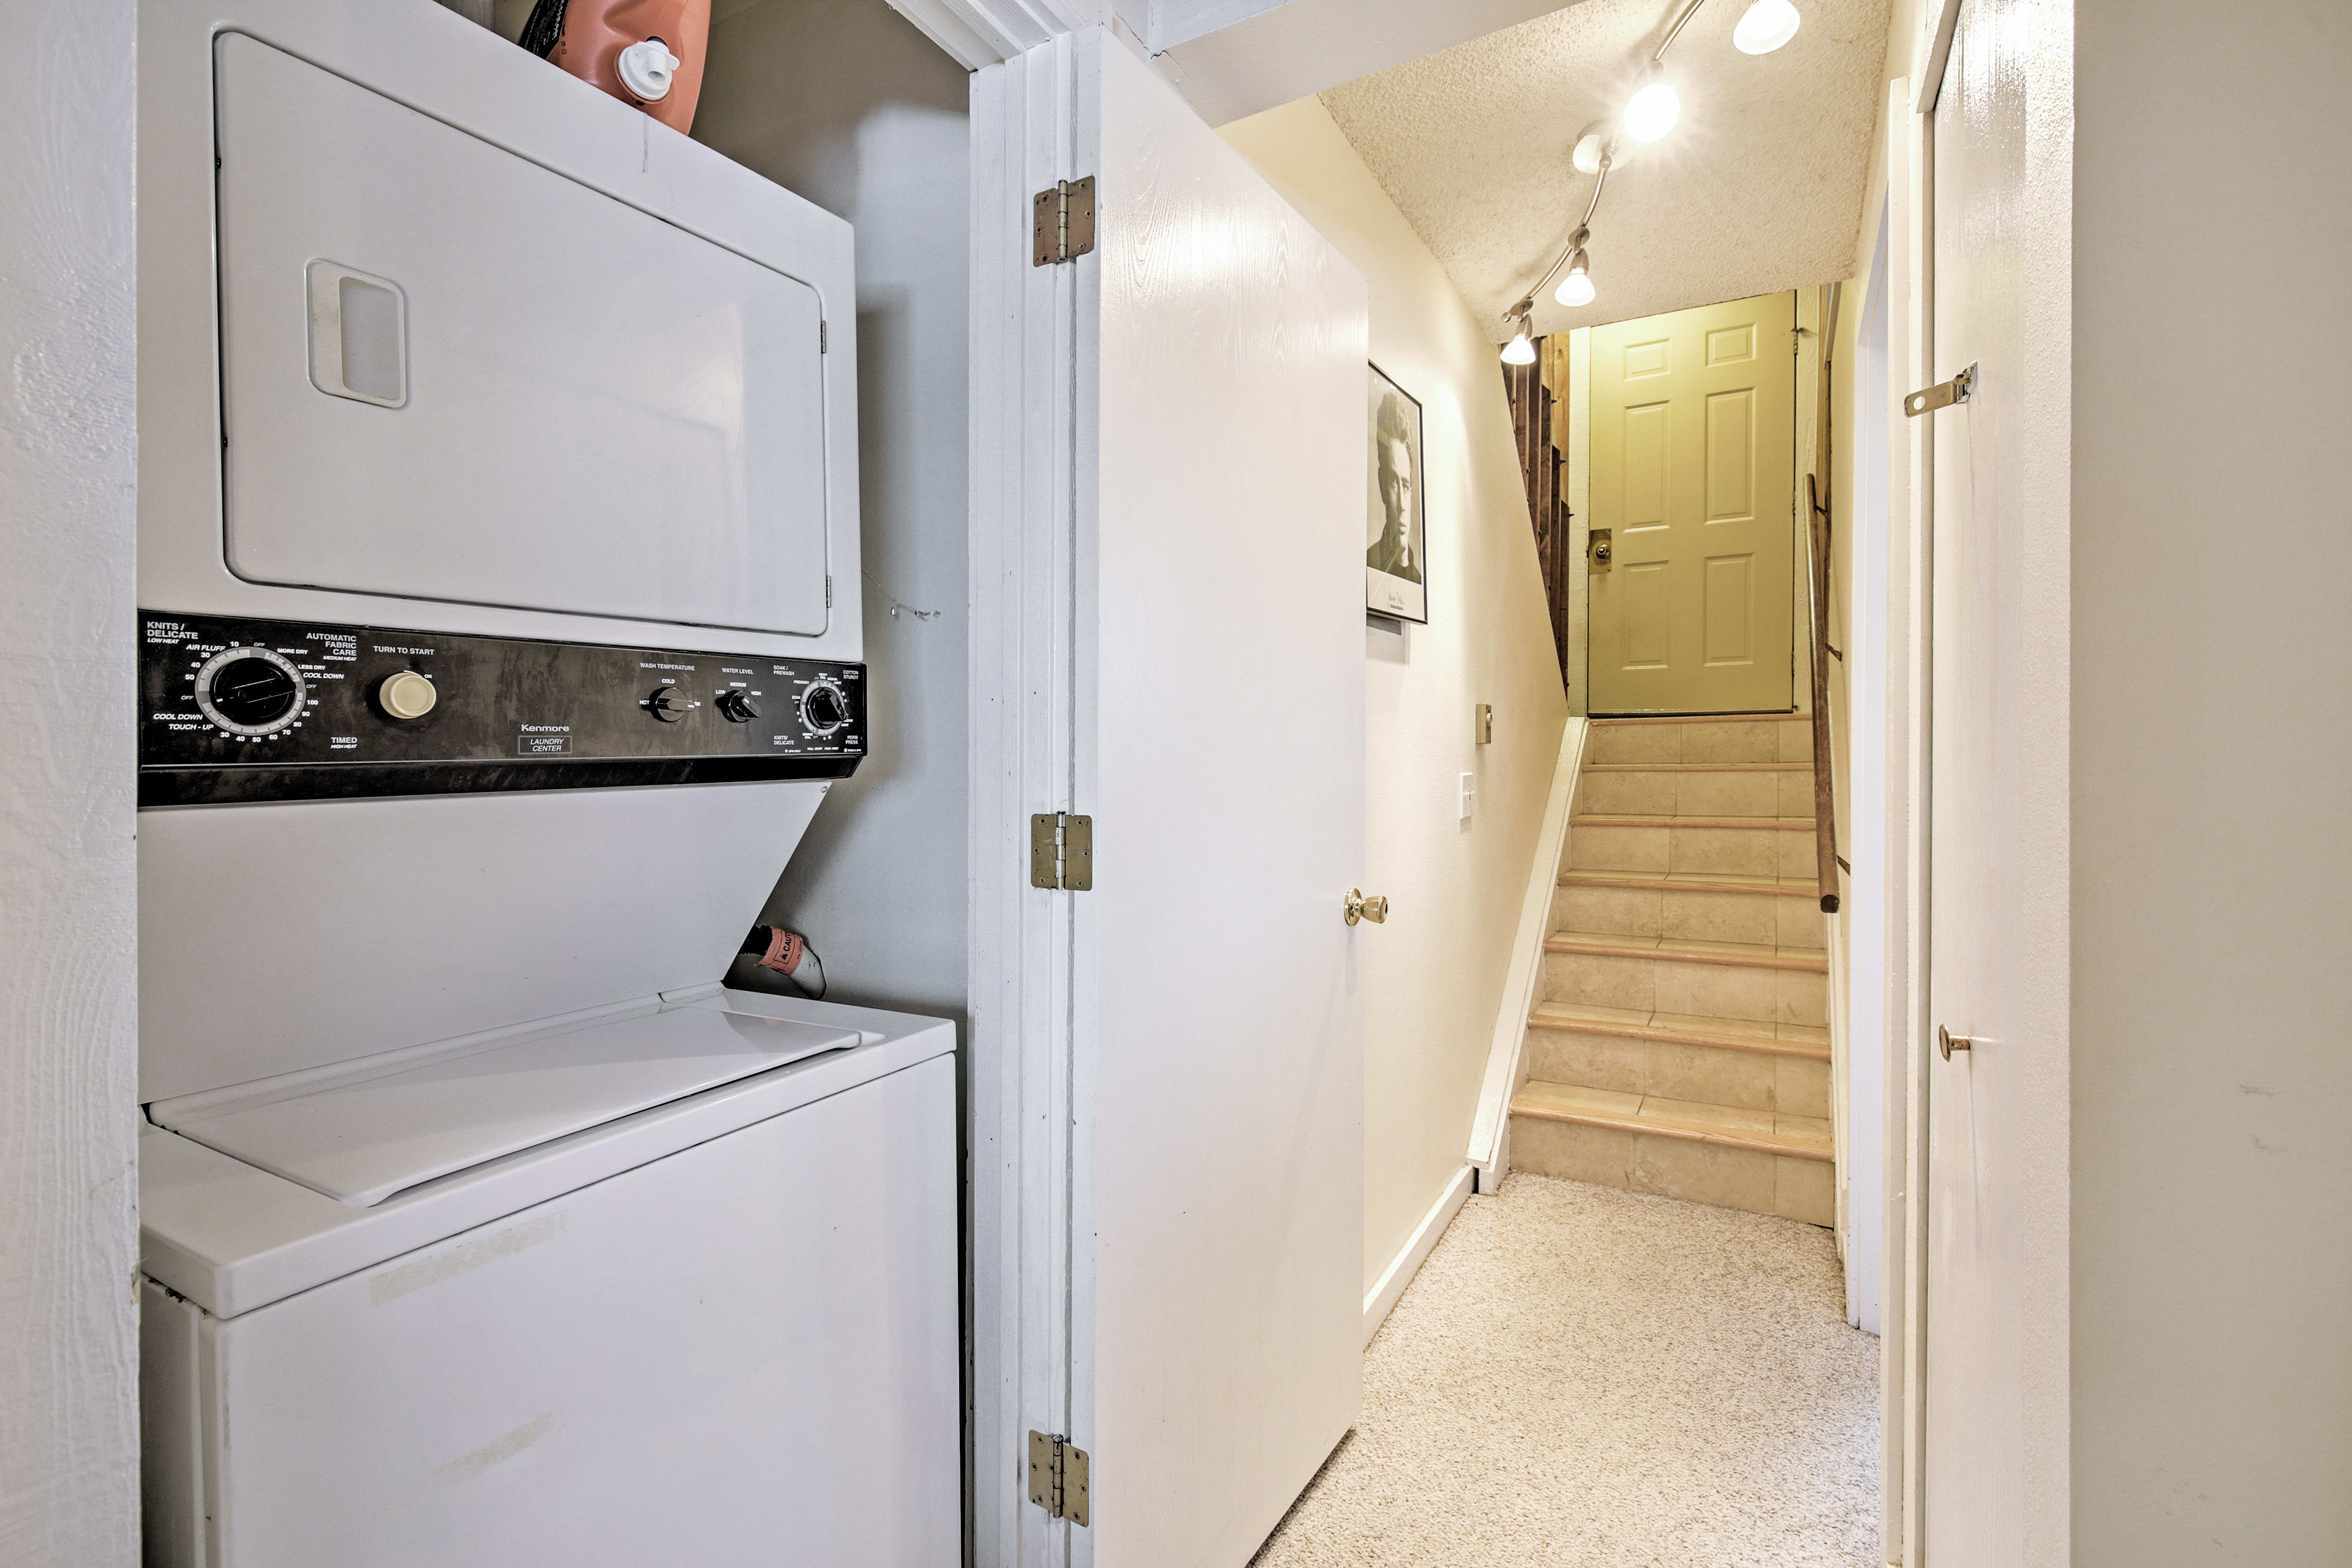 In-Unit Laundry Machines | Ground Floor | Cleaning Essentials Provided